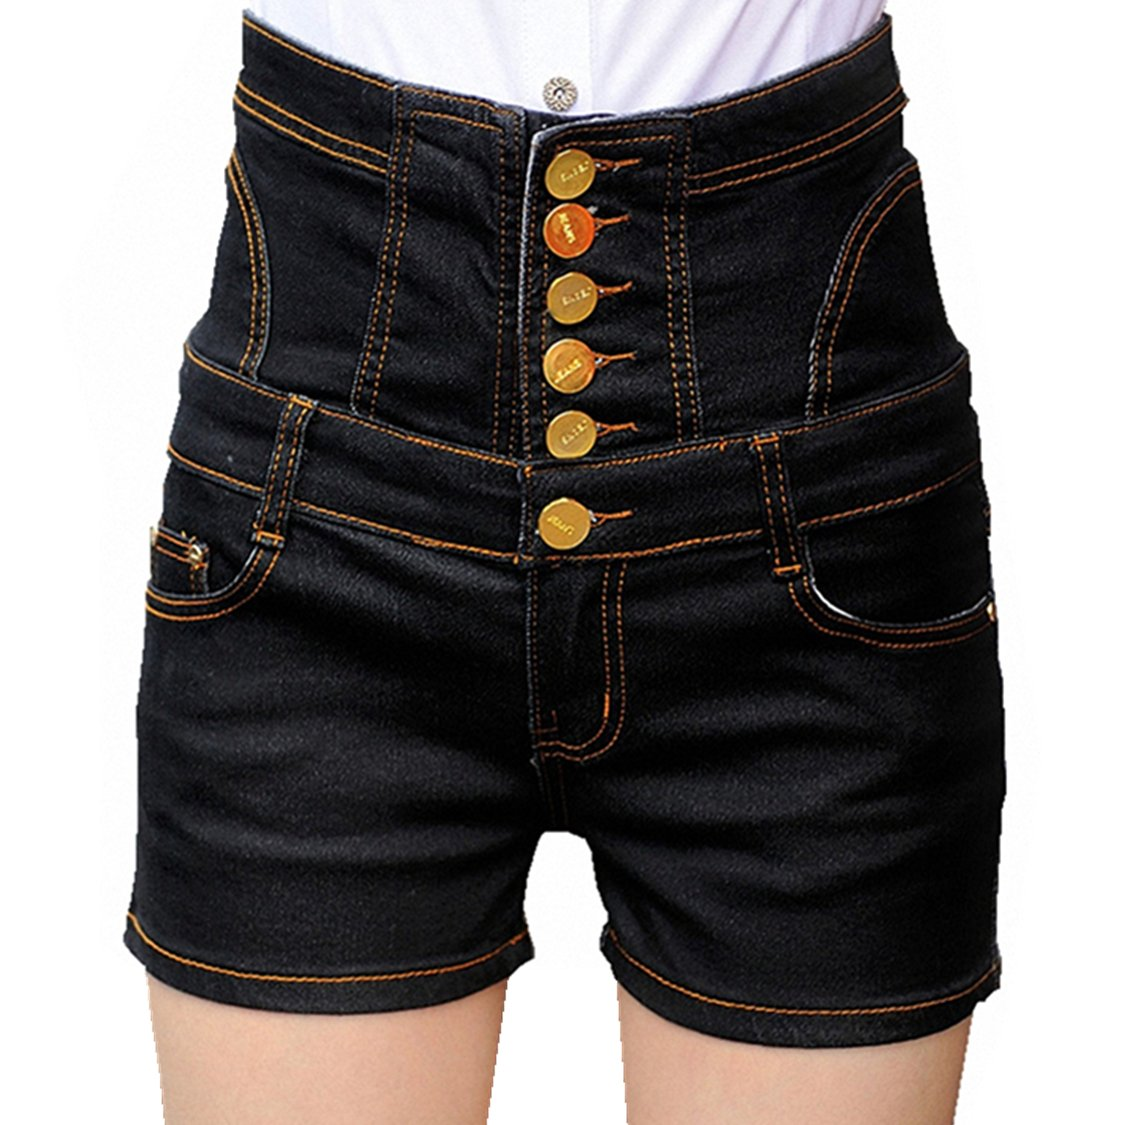 CrazyPomelo Womens Vintage High-Waisted Bandage Back Skinny Denim Shorts